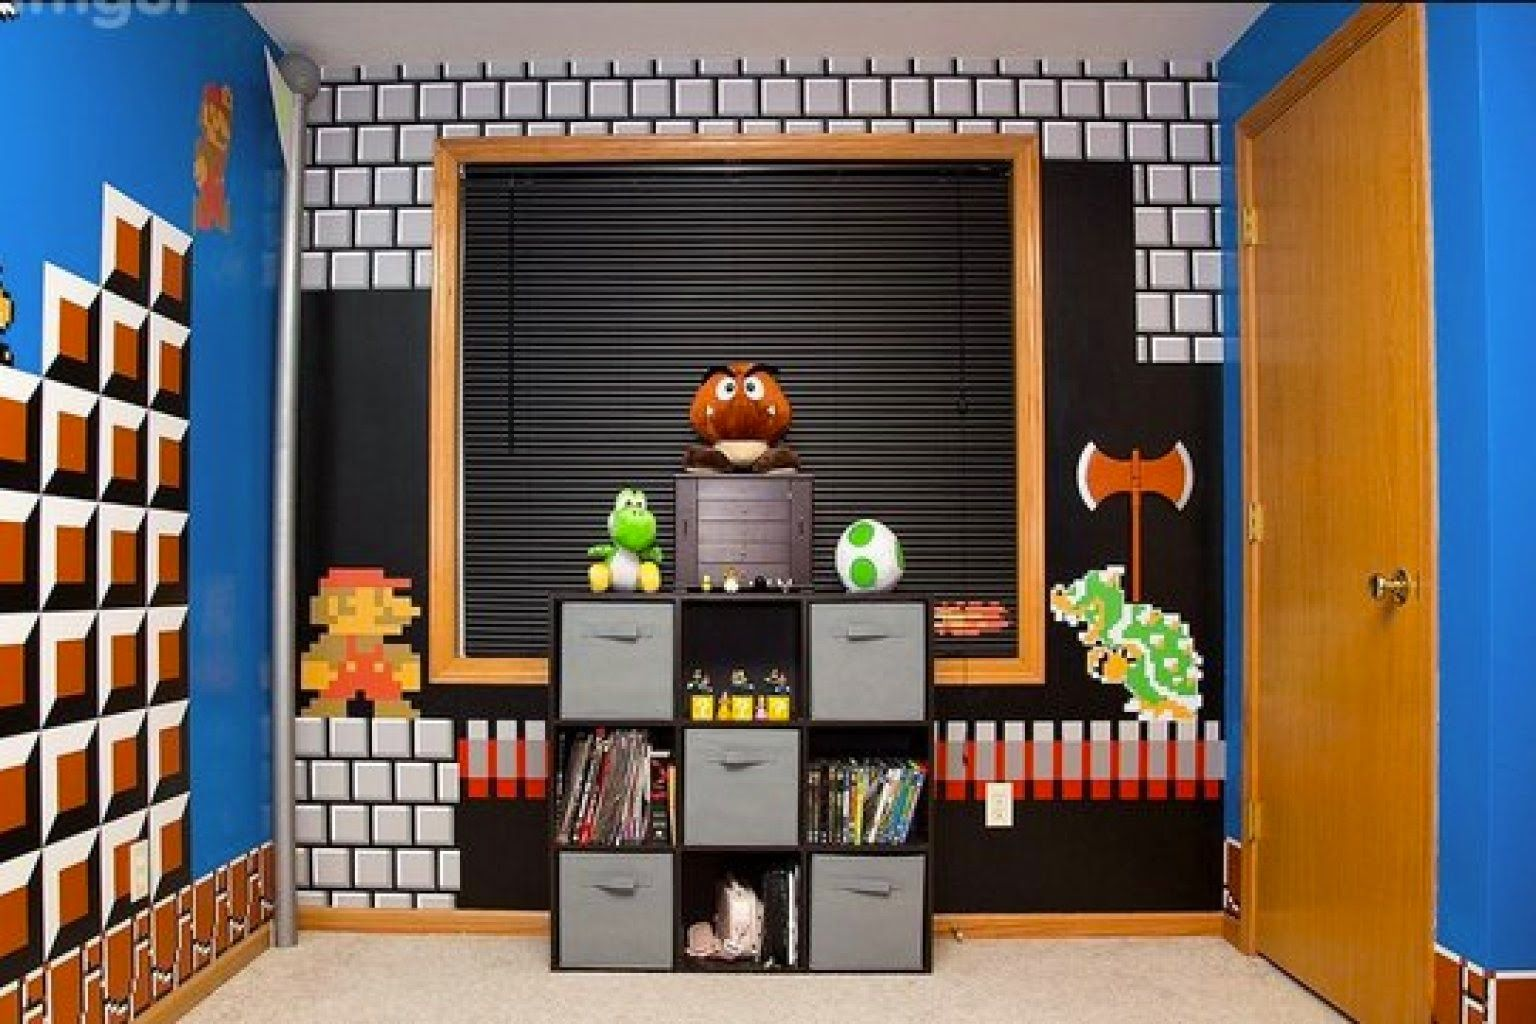 47 epic video game room decoration ideas for 2017 video games 47 epic video game room decoration ideas for 2017 amipublicfo Gallery